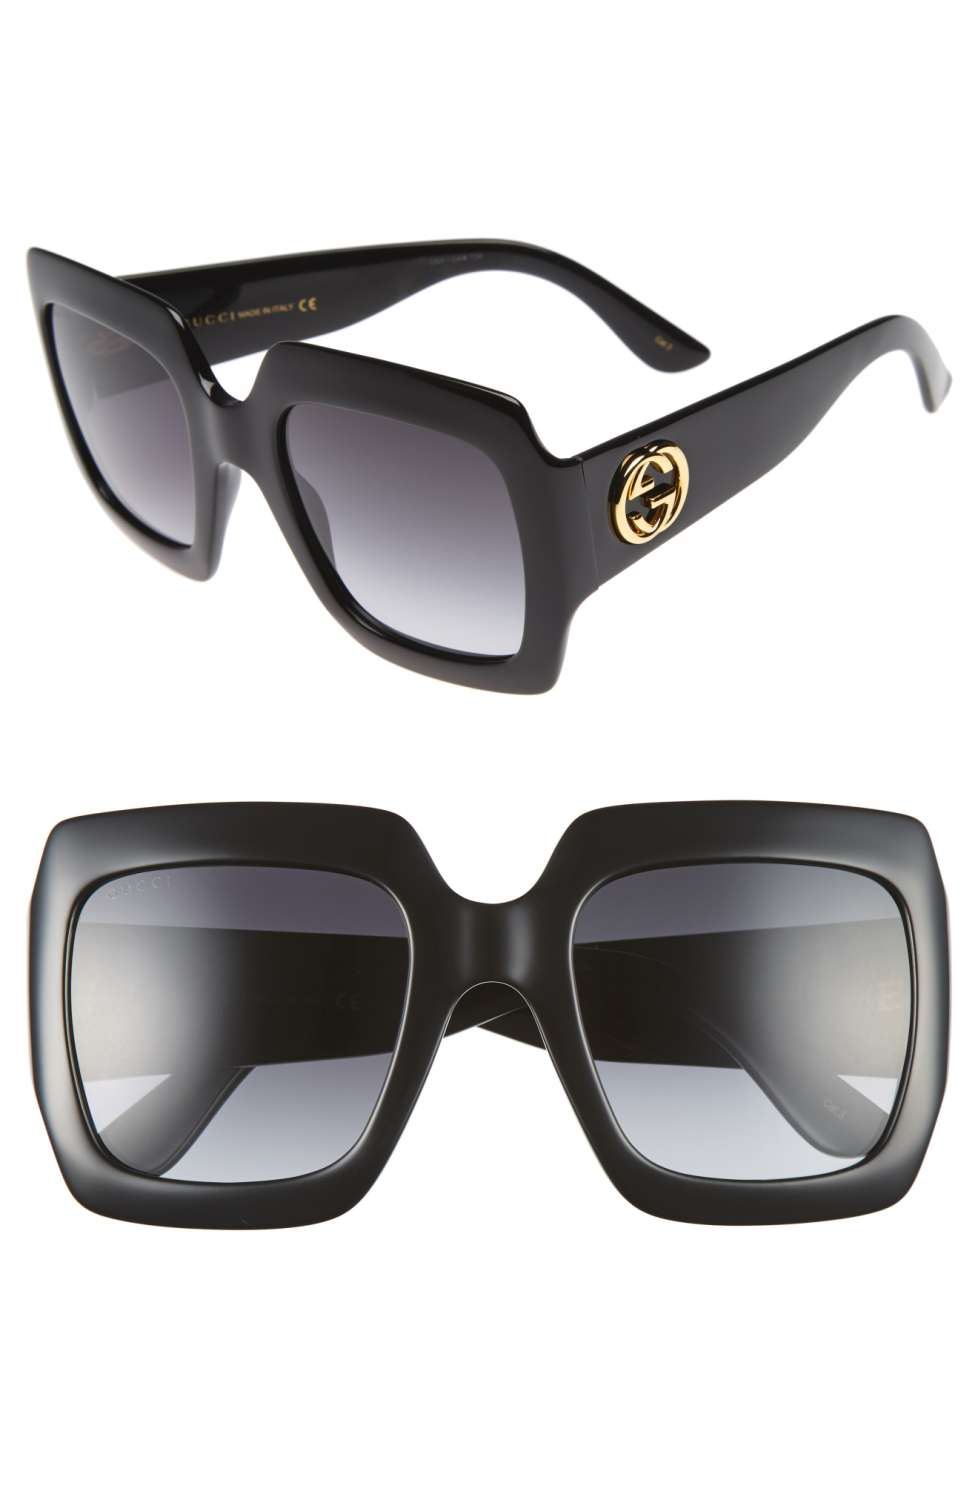 Copy of Gucci Sunnies